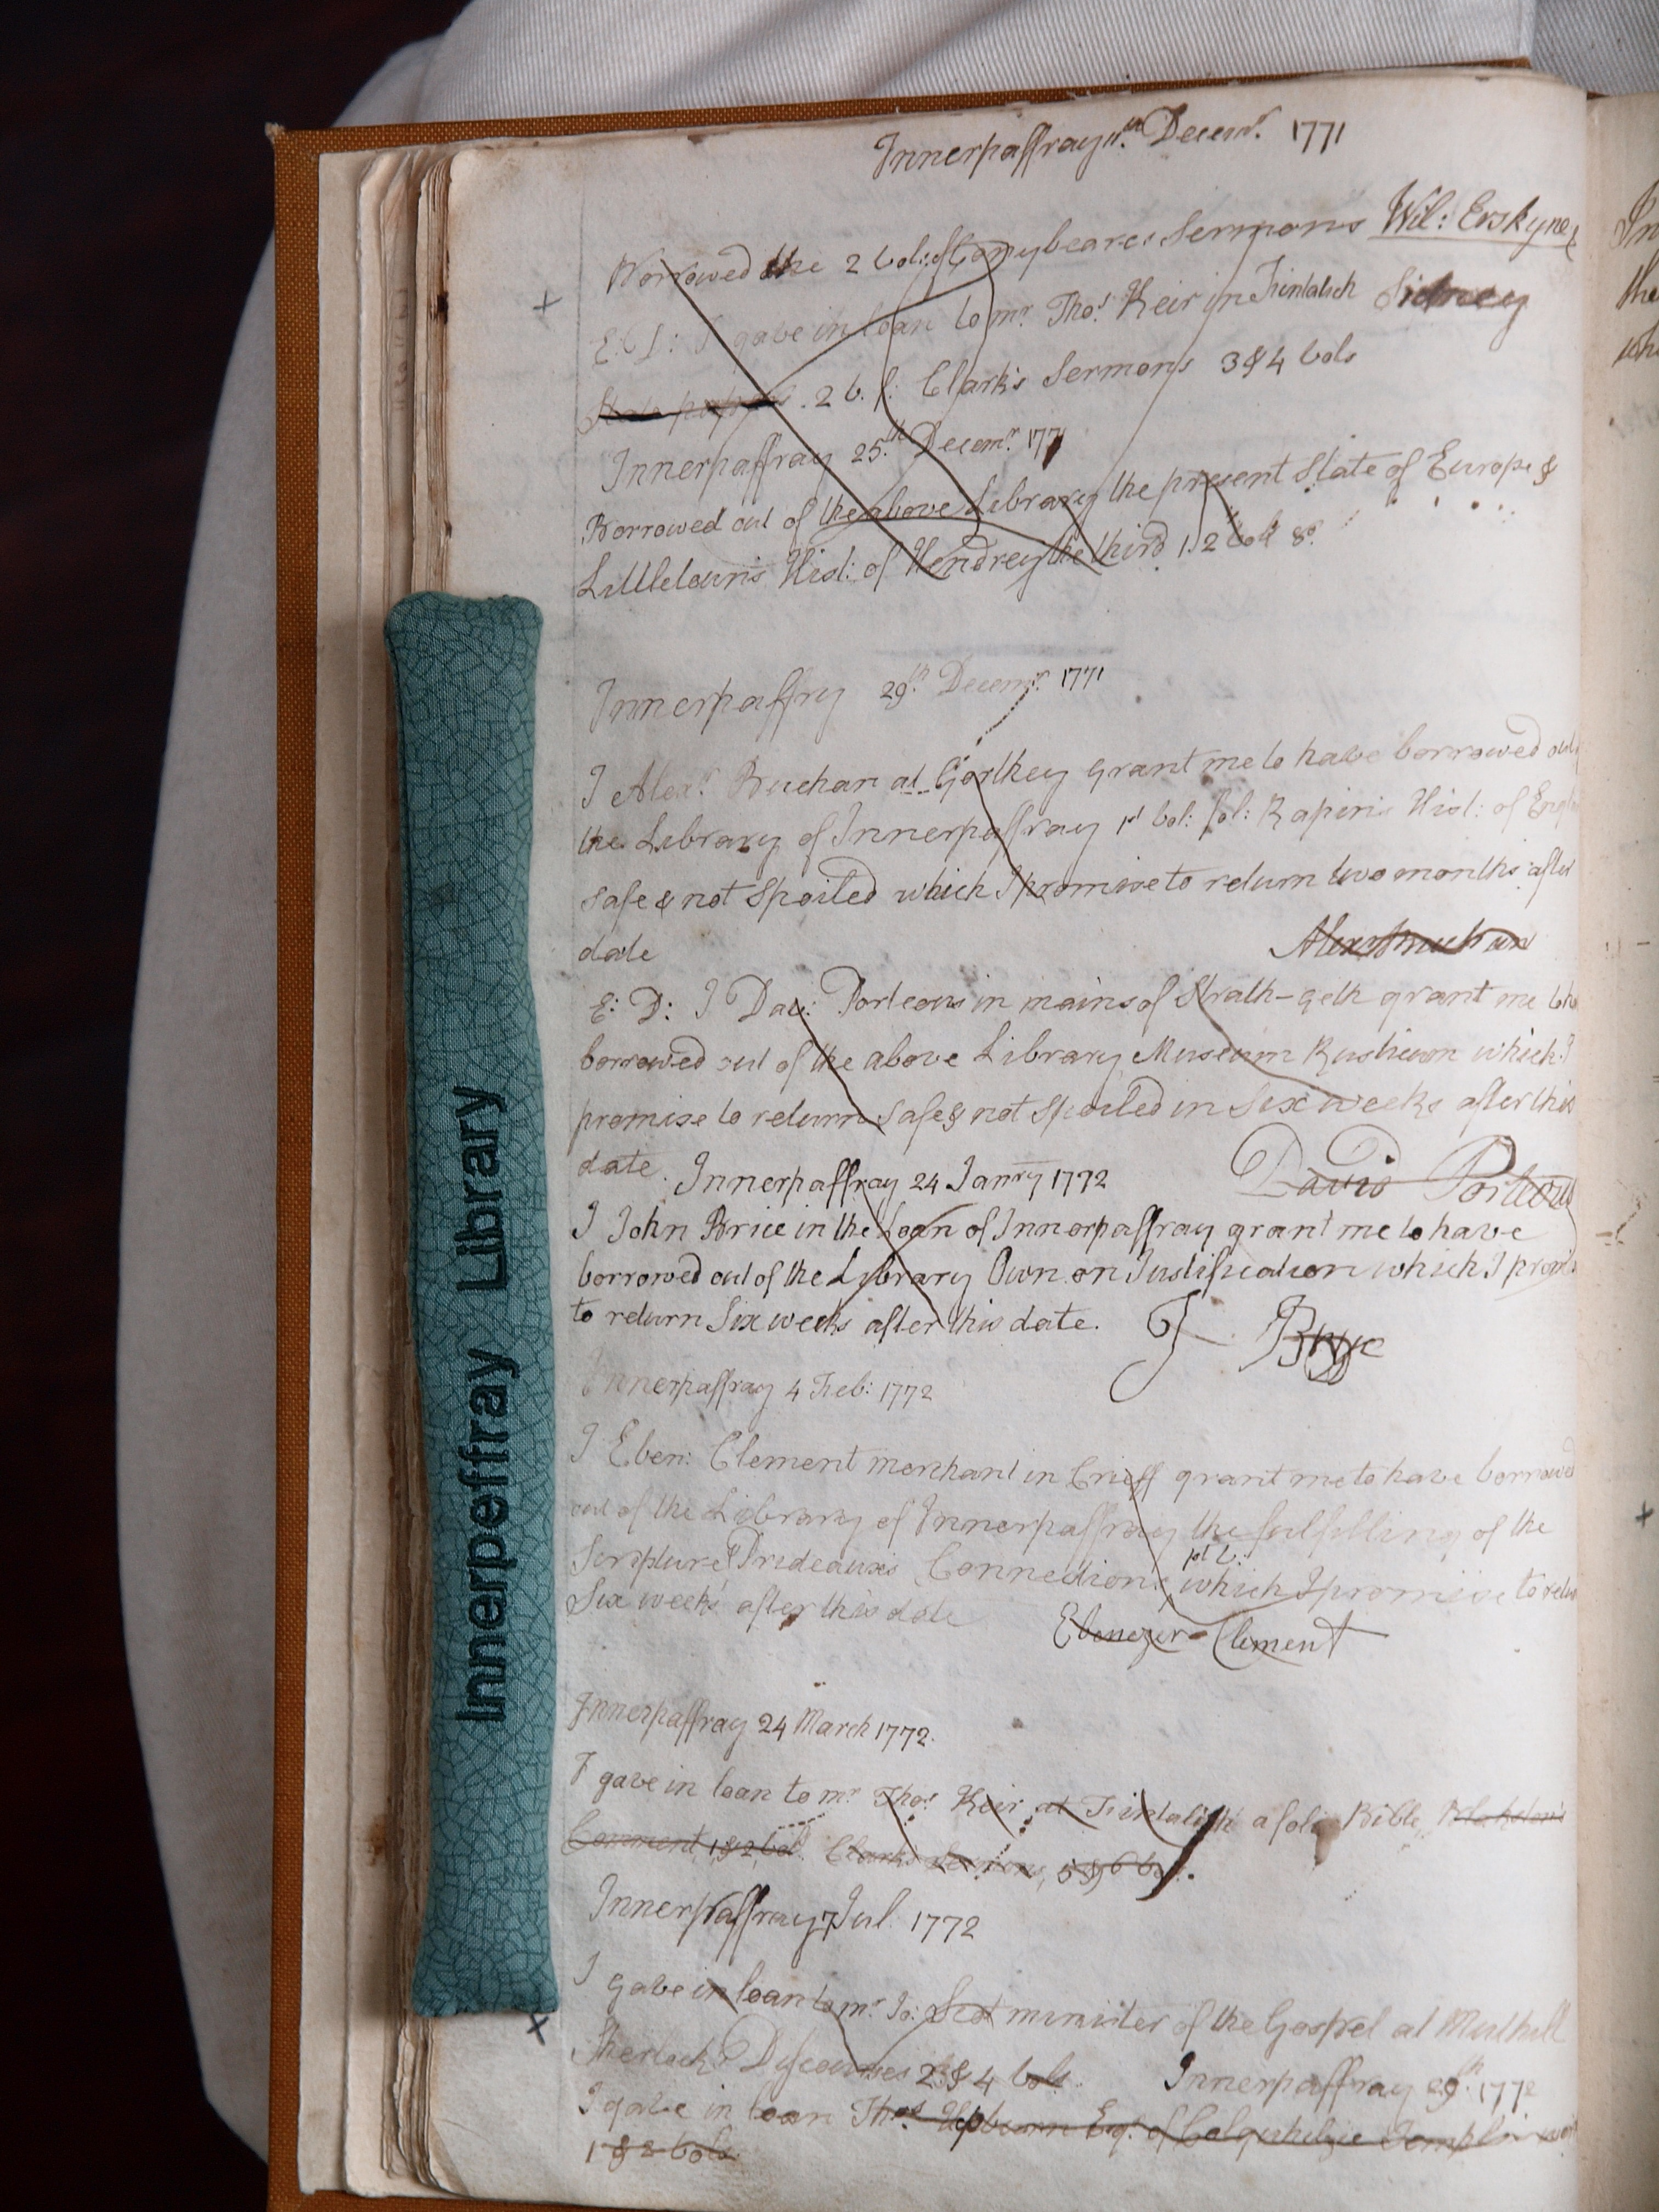 December Borrowings, 1771. Innerpeffray Borrowers' Register, Vol. 1. By kind permission of the Trustees of the Library of Innerpeffray.